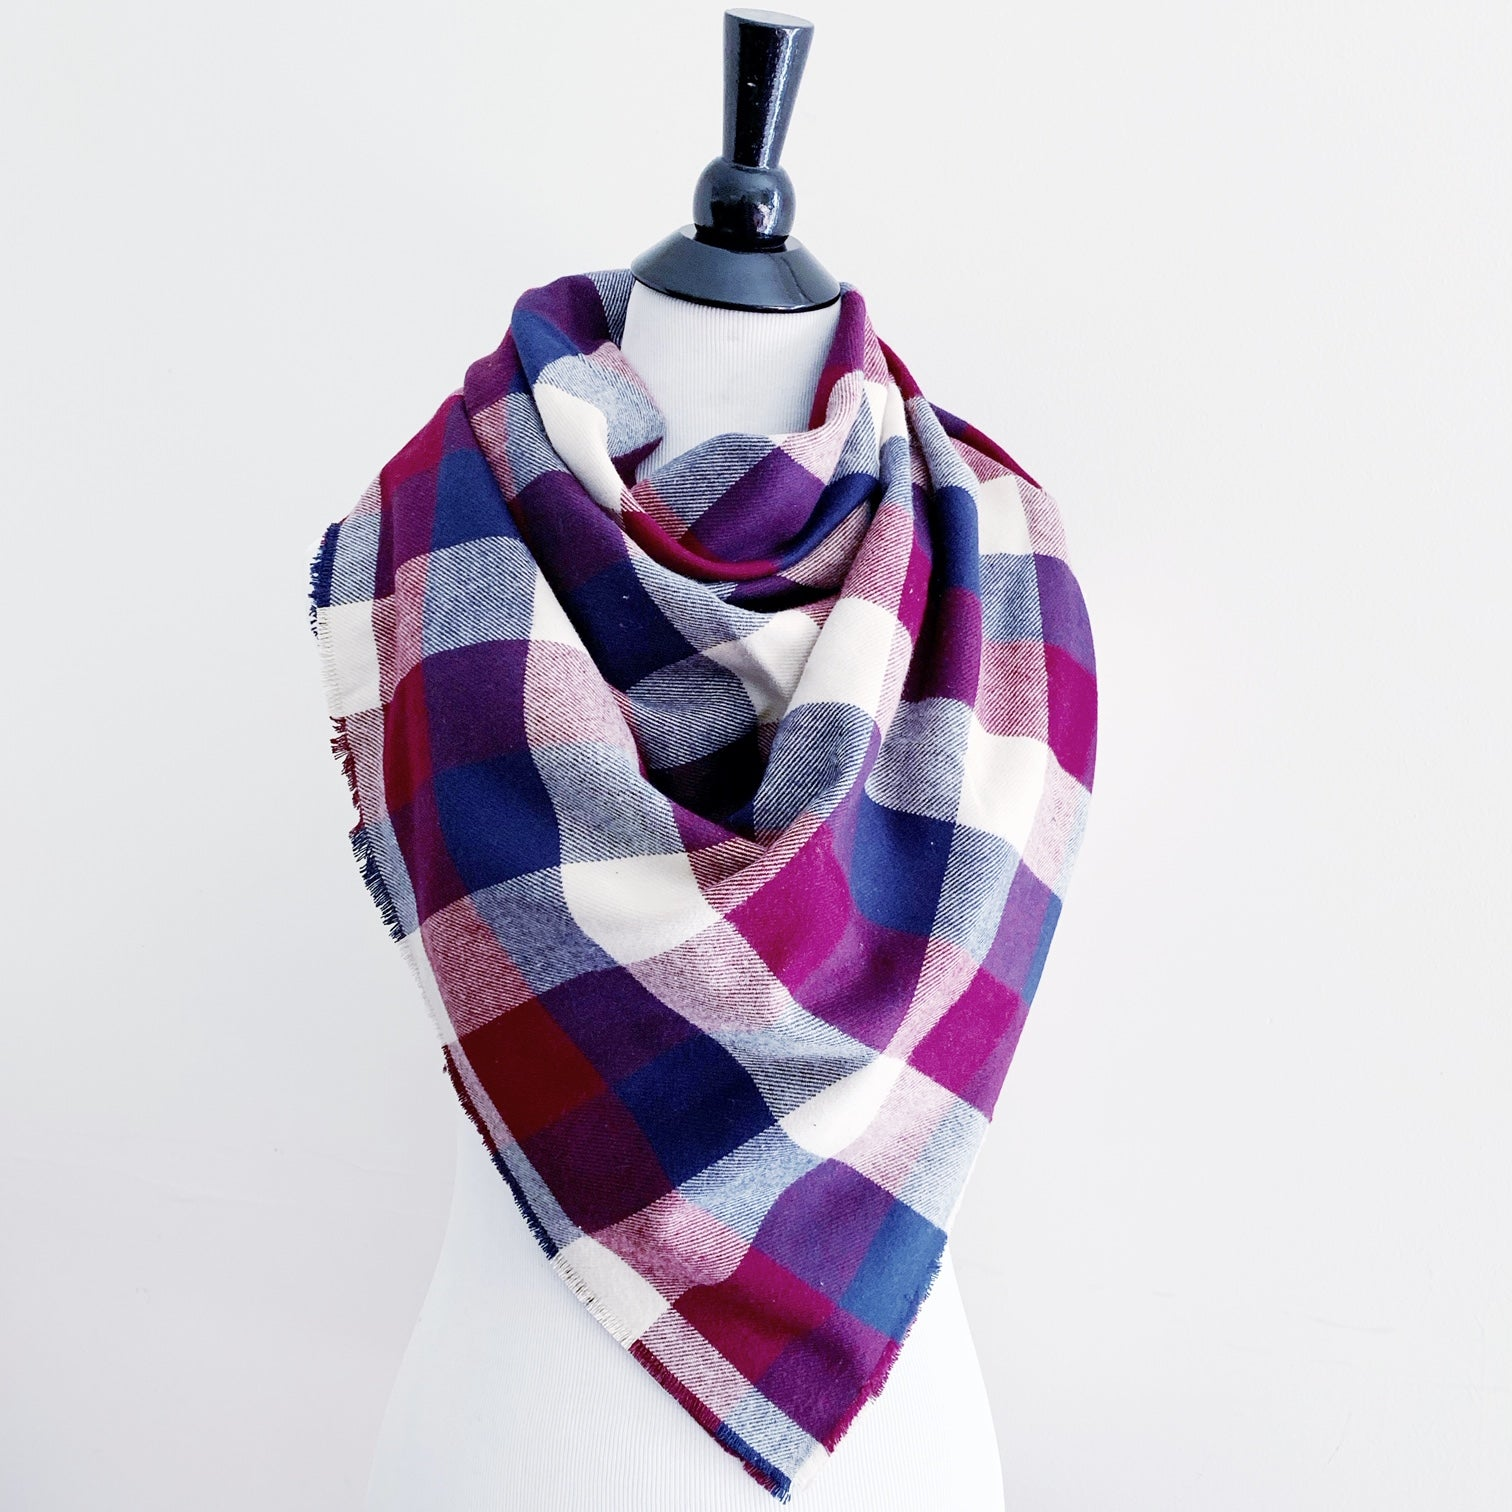 Blanket Scarf - Burgundy/Navy/Cream Plaid